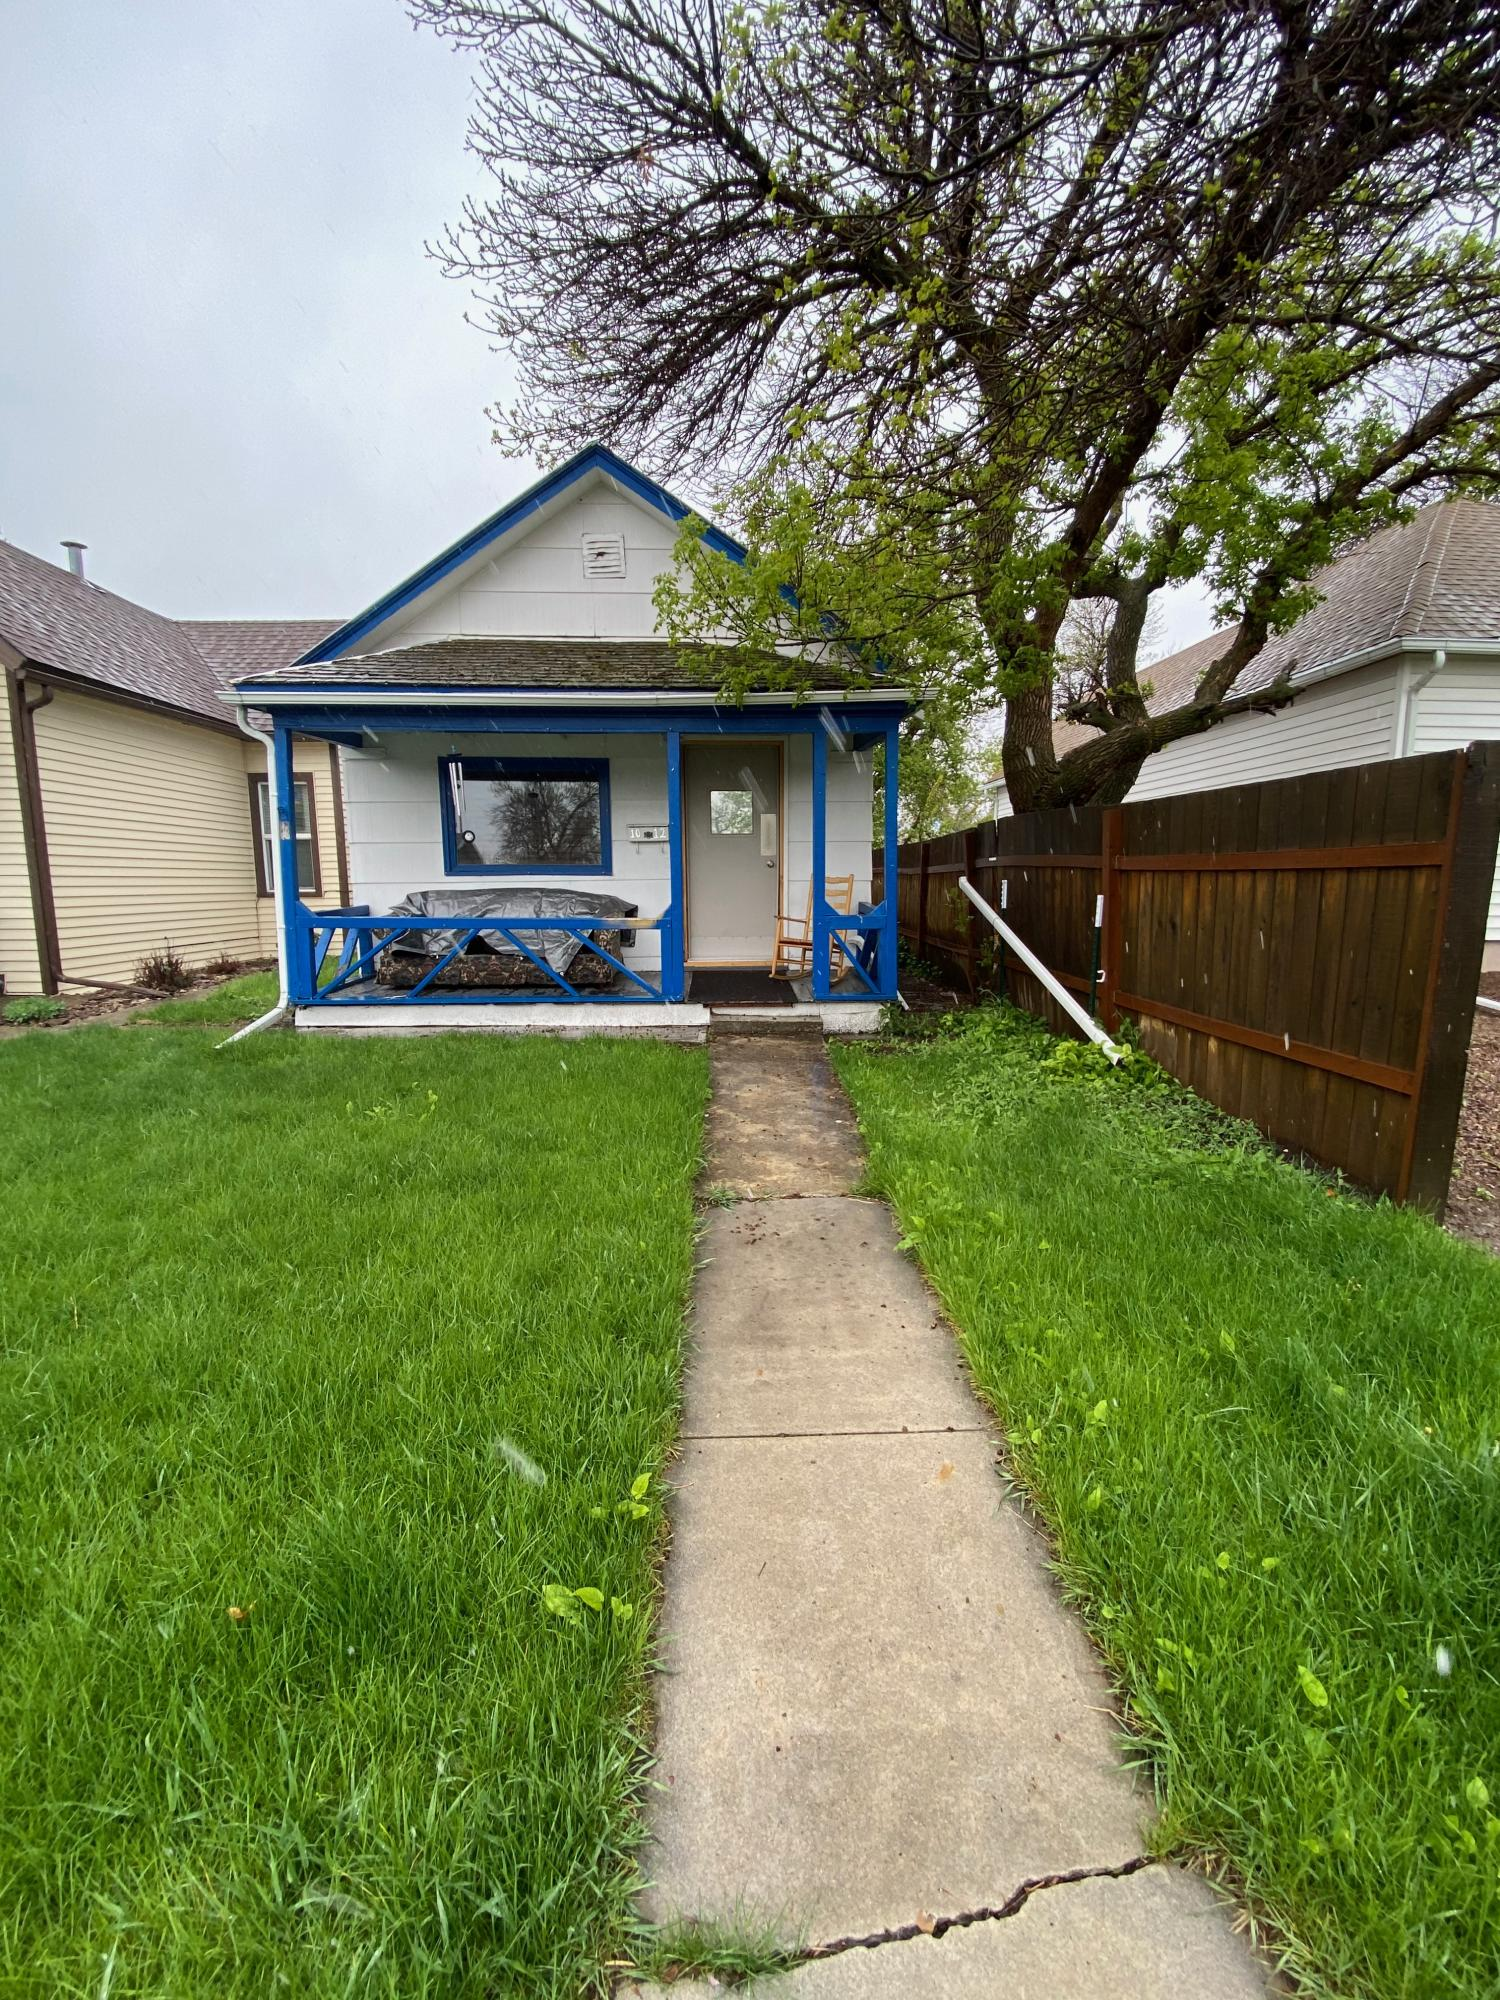 CALLING ALL INVESTORS! CUTE 2 BEDROOM, 1 BATHROOM WITH OVERSIZED 1 CAR GARAGE. SELLING ''AS IS'' WHERE IS SELLER WILL NOT MAKE ANY REPAIRS.